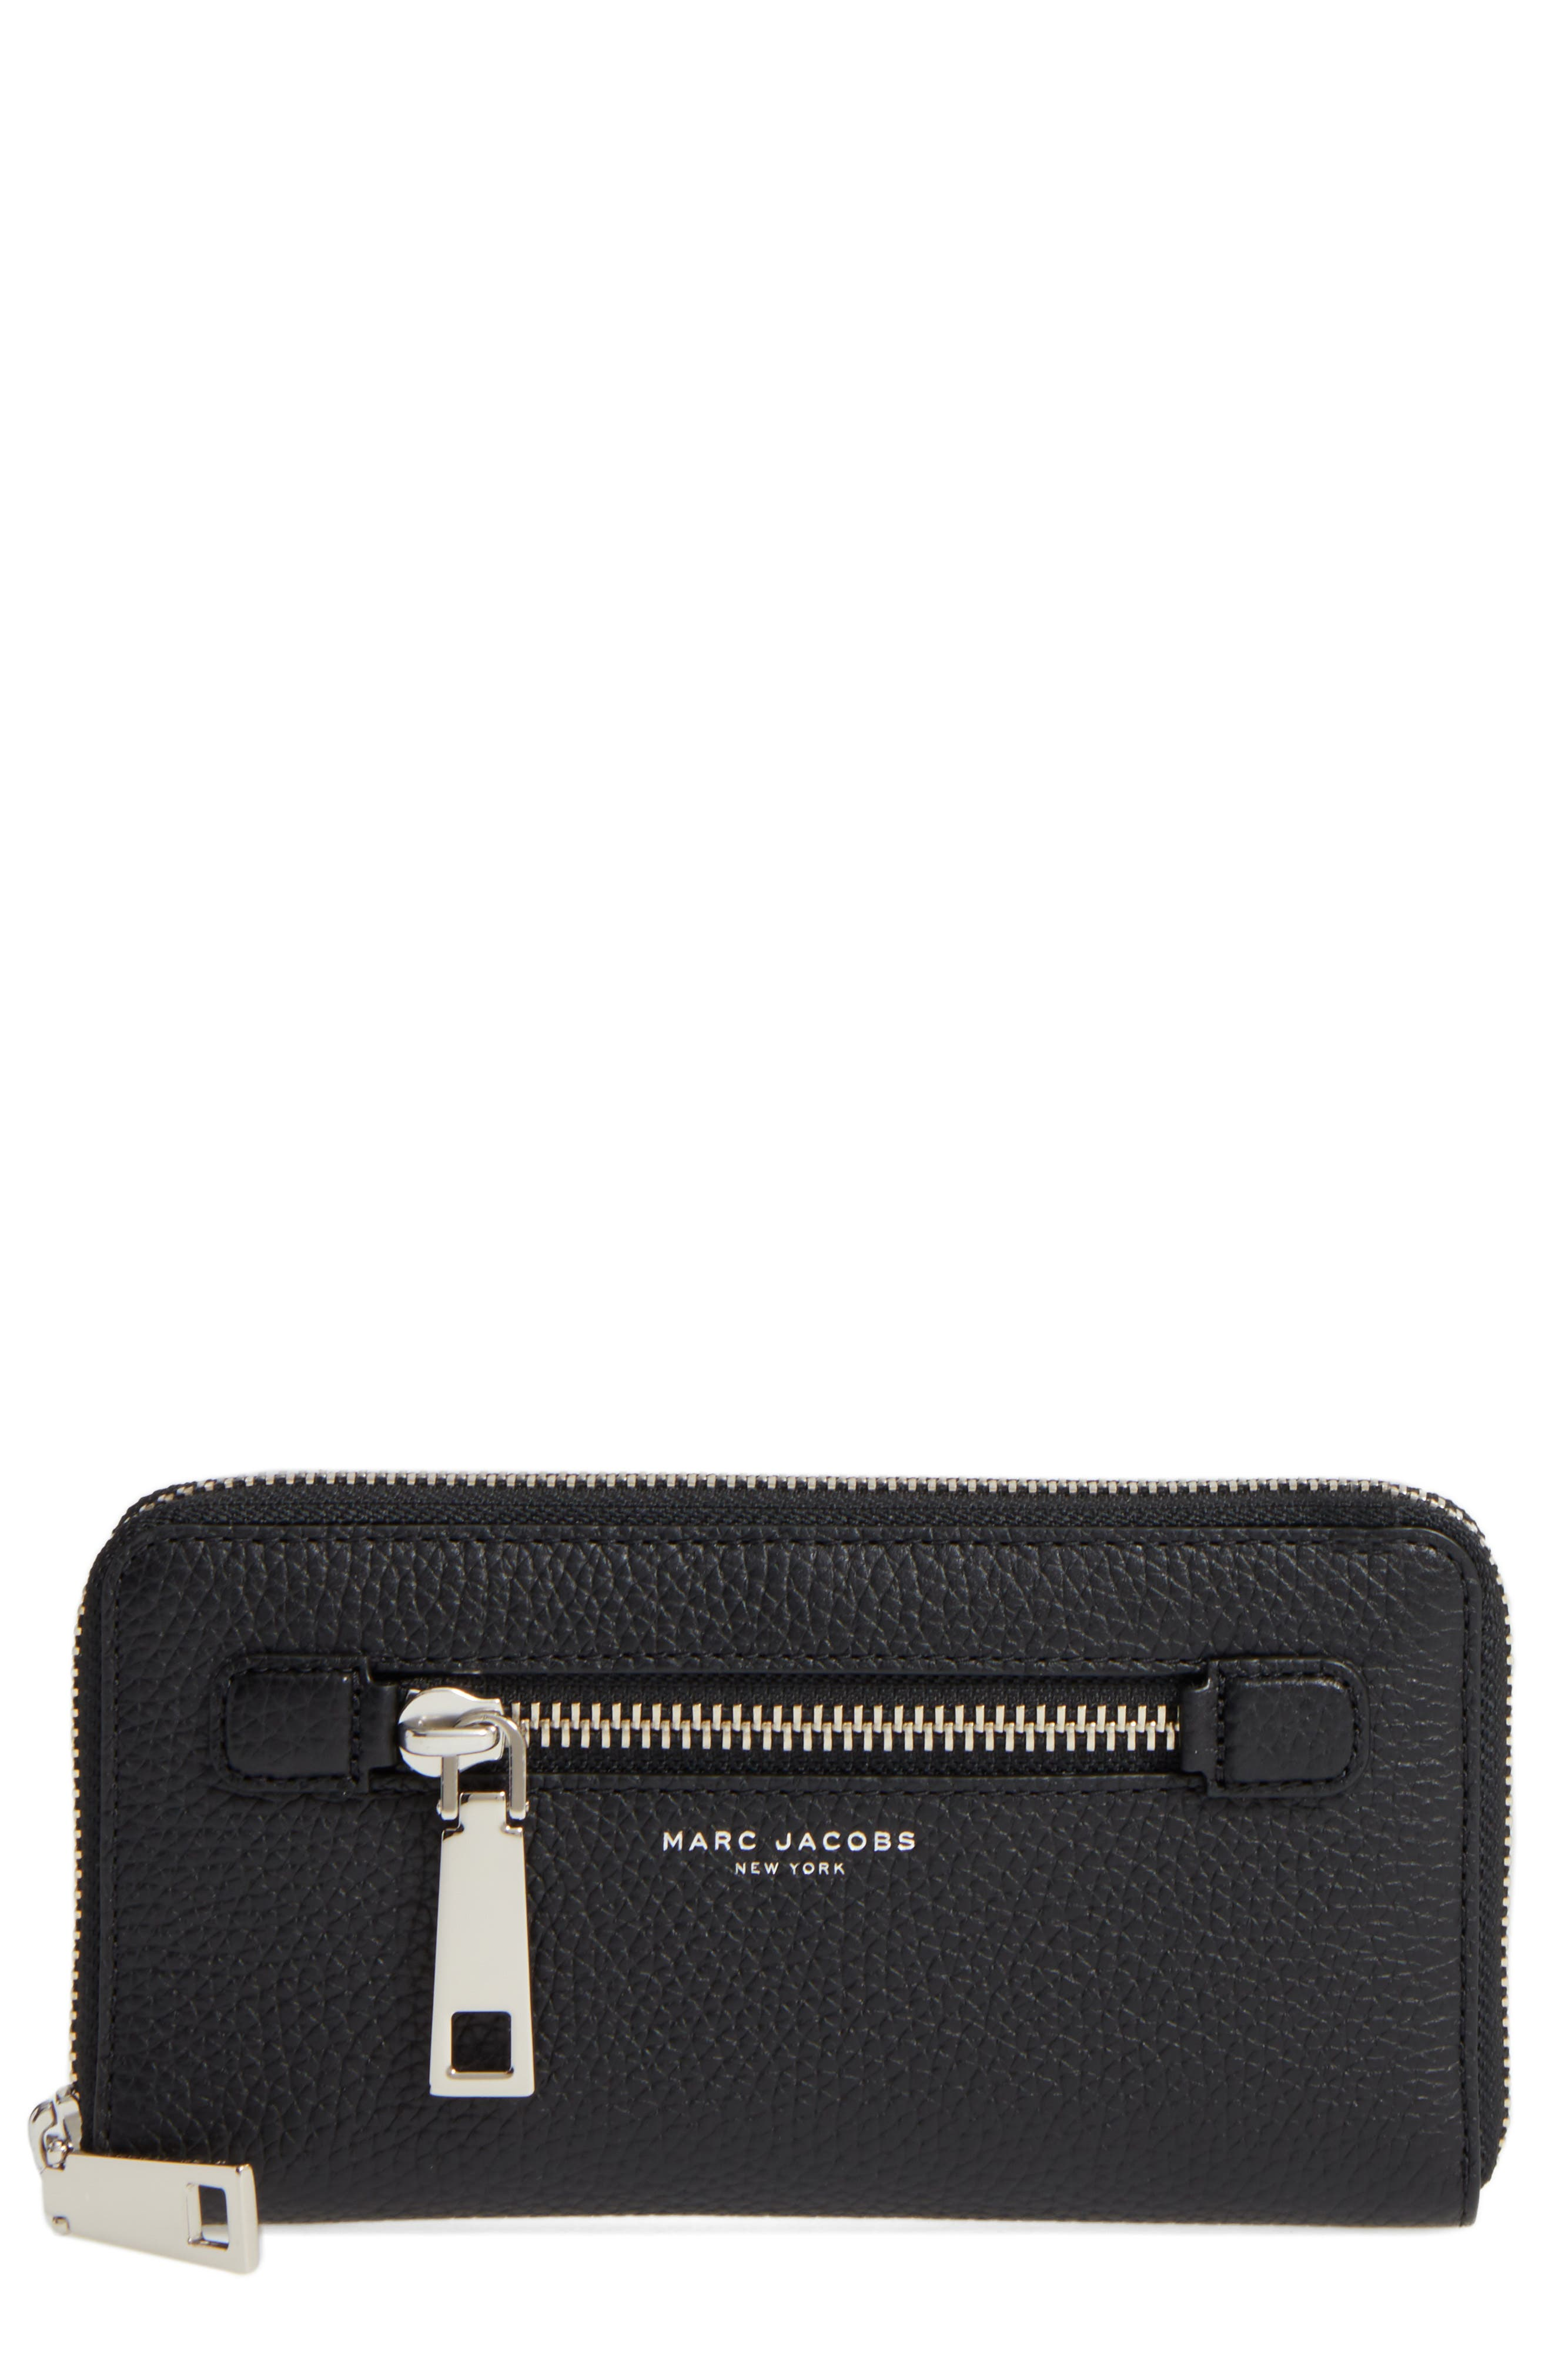 Vertical Zippy Wallet,                             Main thumbnail 1, color,                             Black